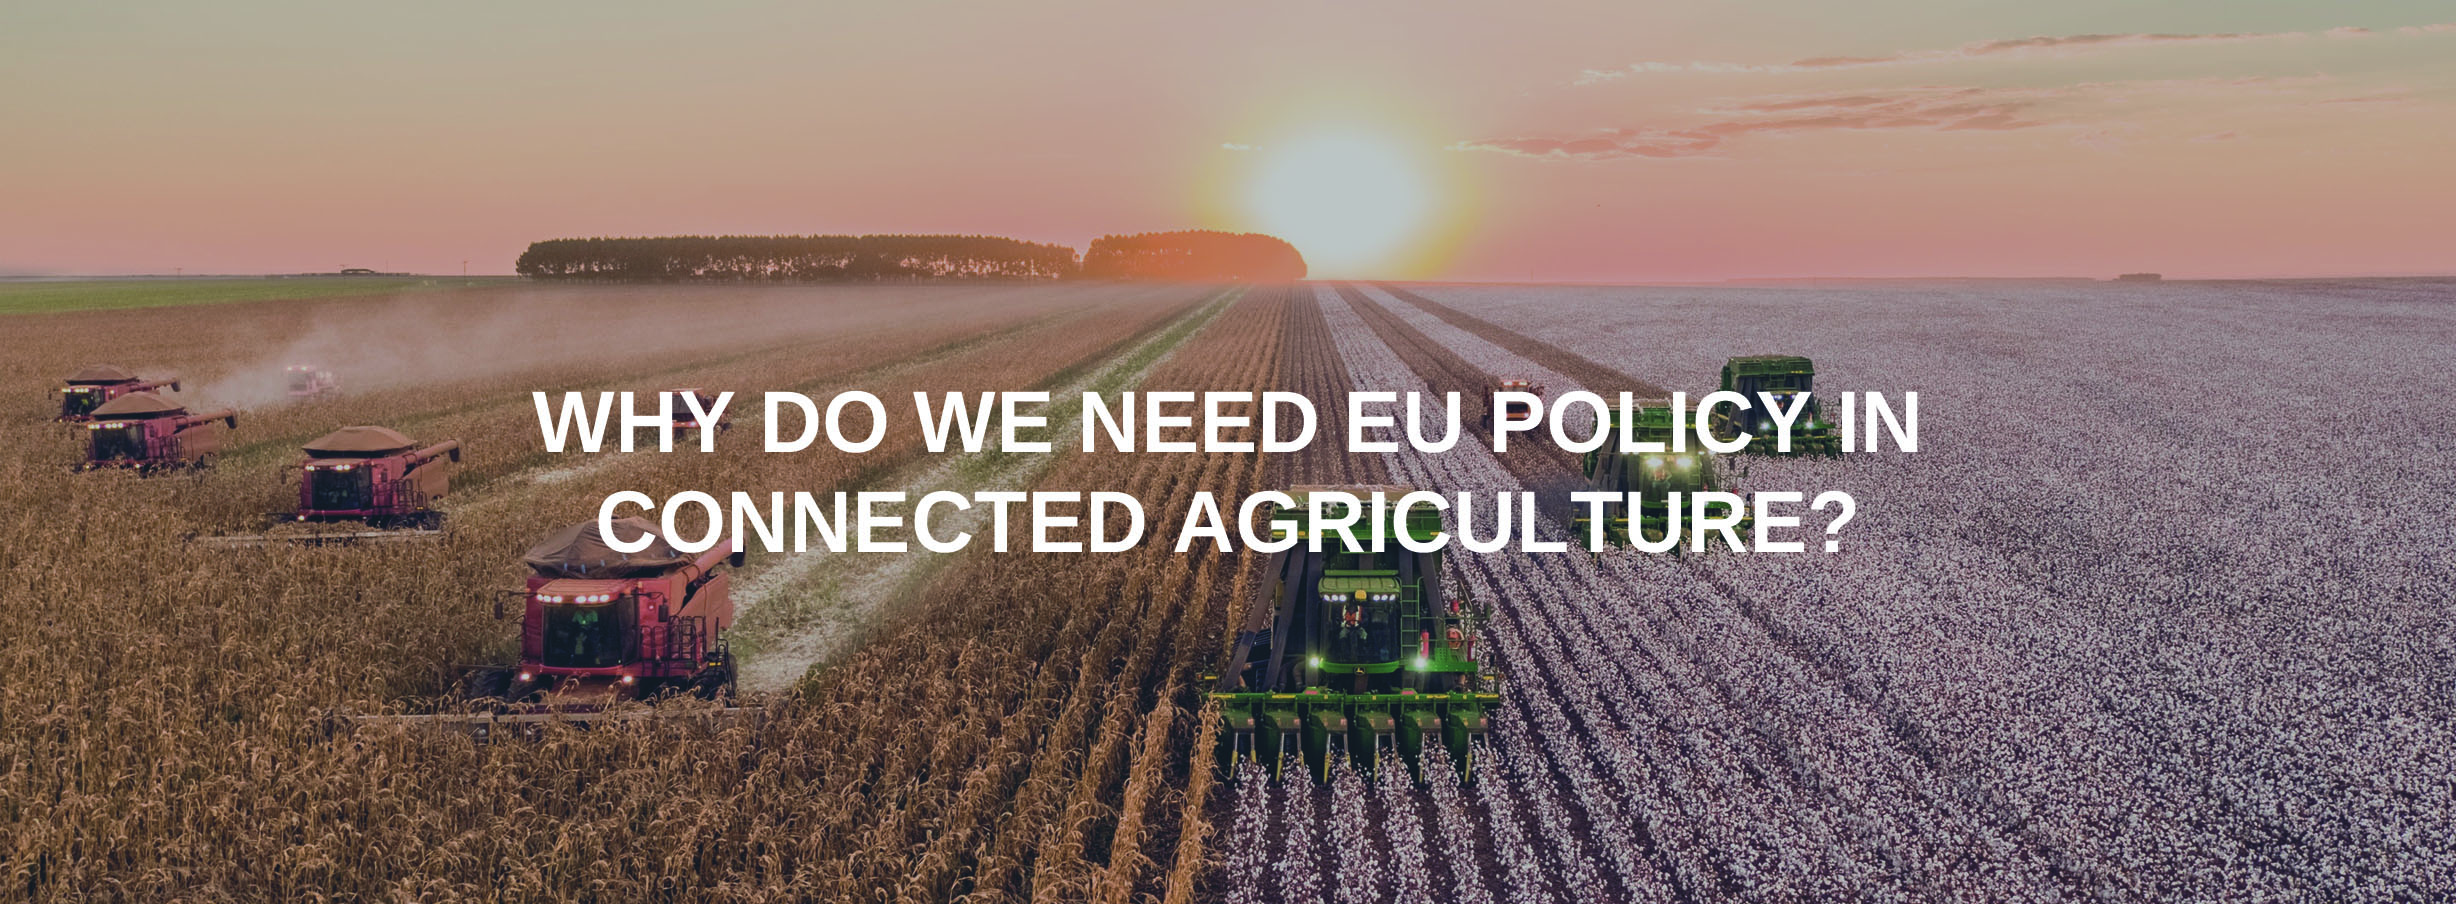 Why Do We Need EU policy in Connected Agriculture?